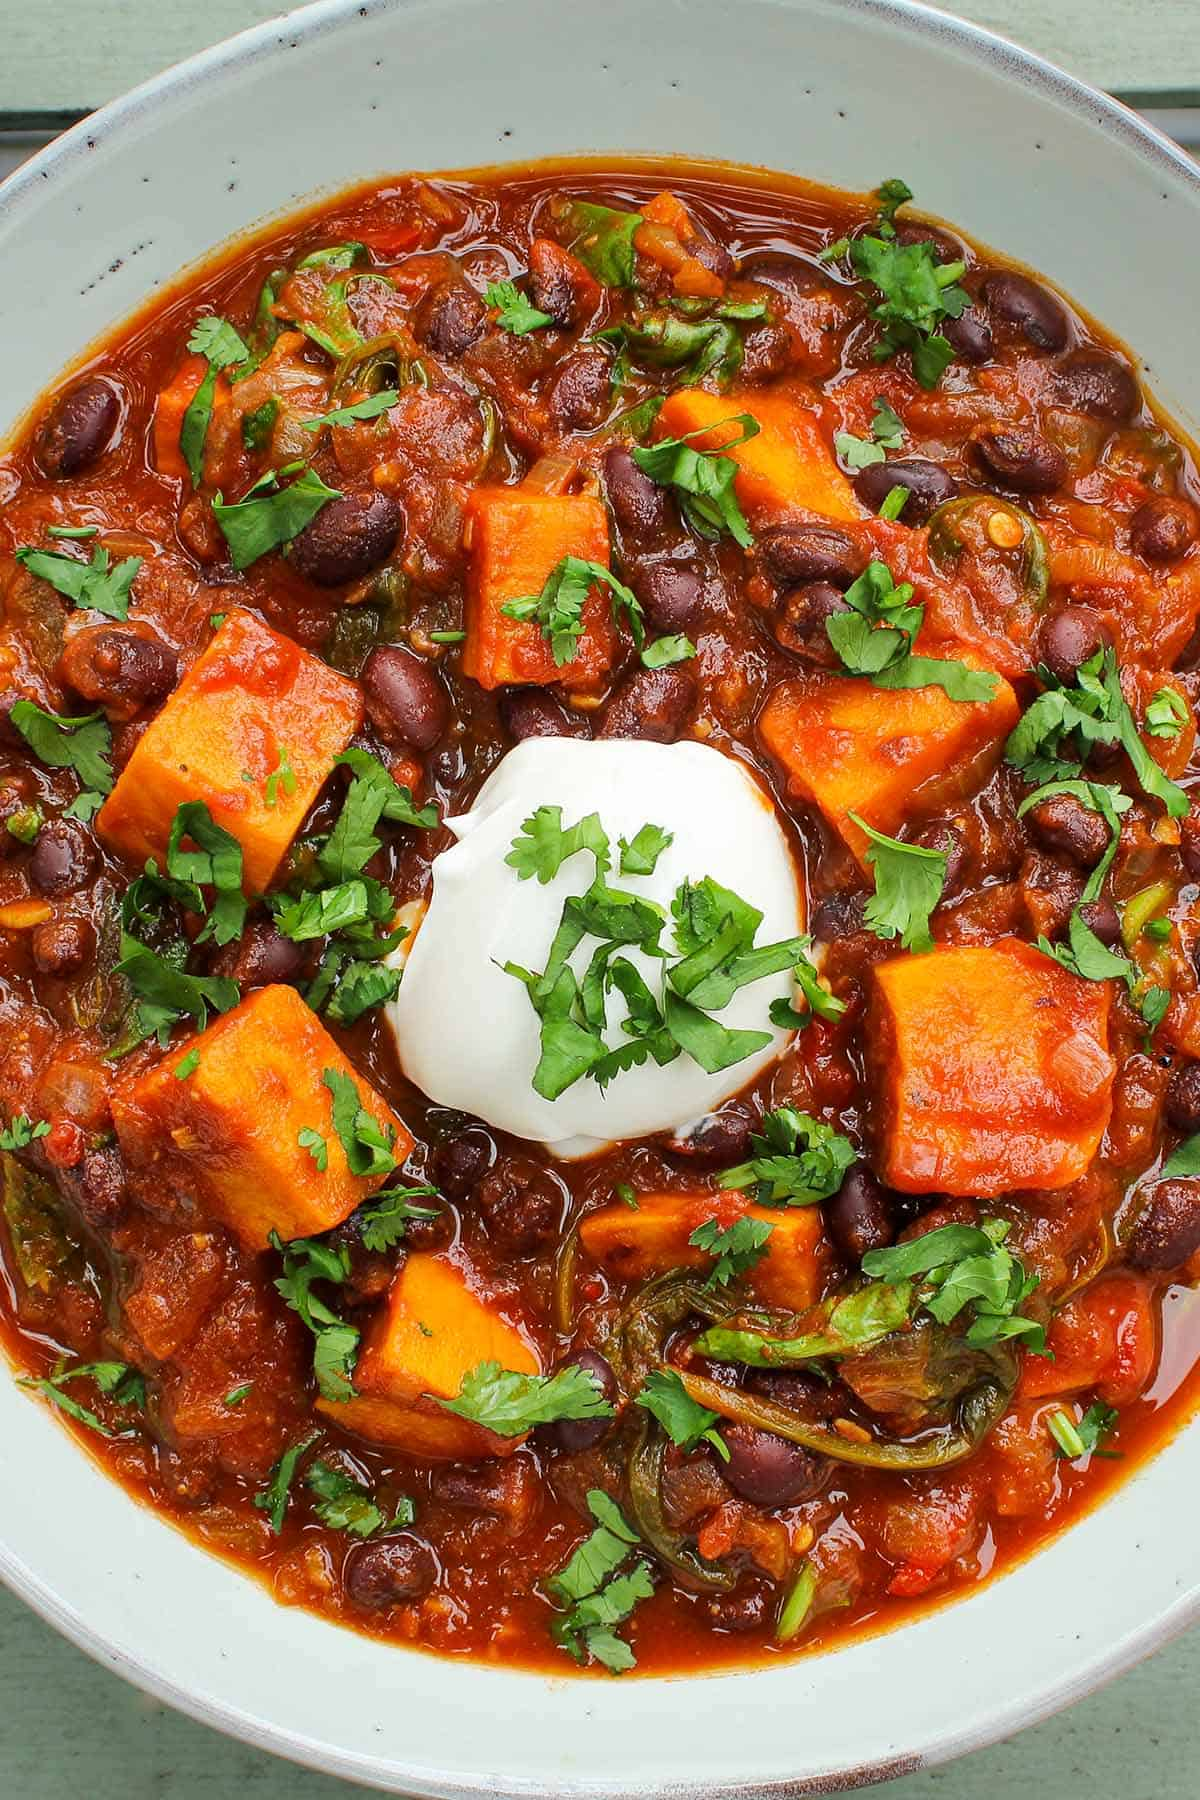 Sweet Potato and Black Bean Chili in Bowl Close-Up